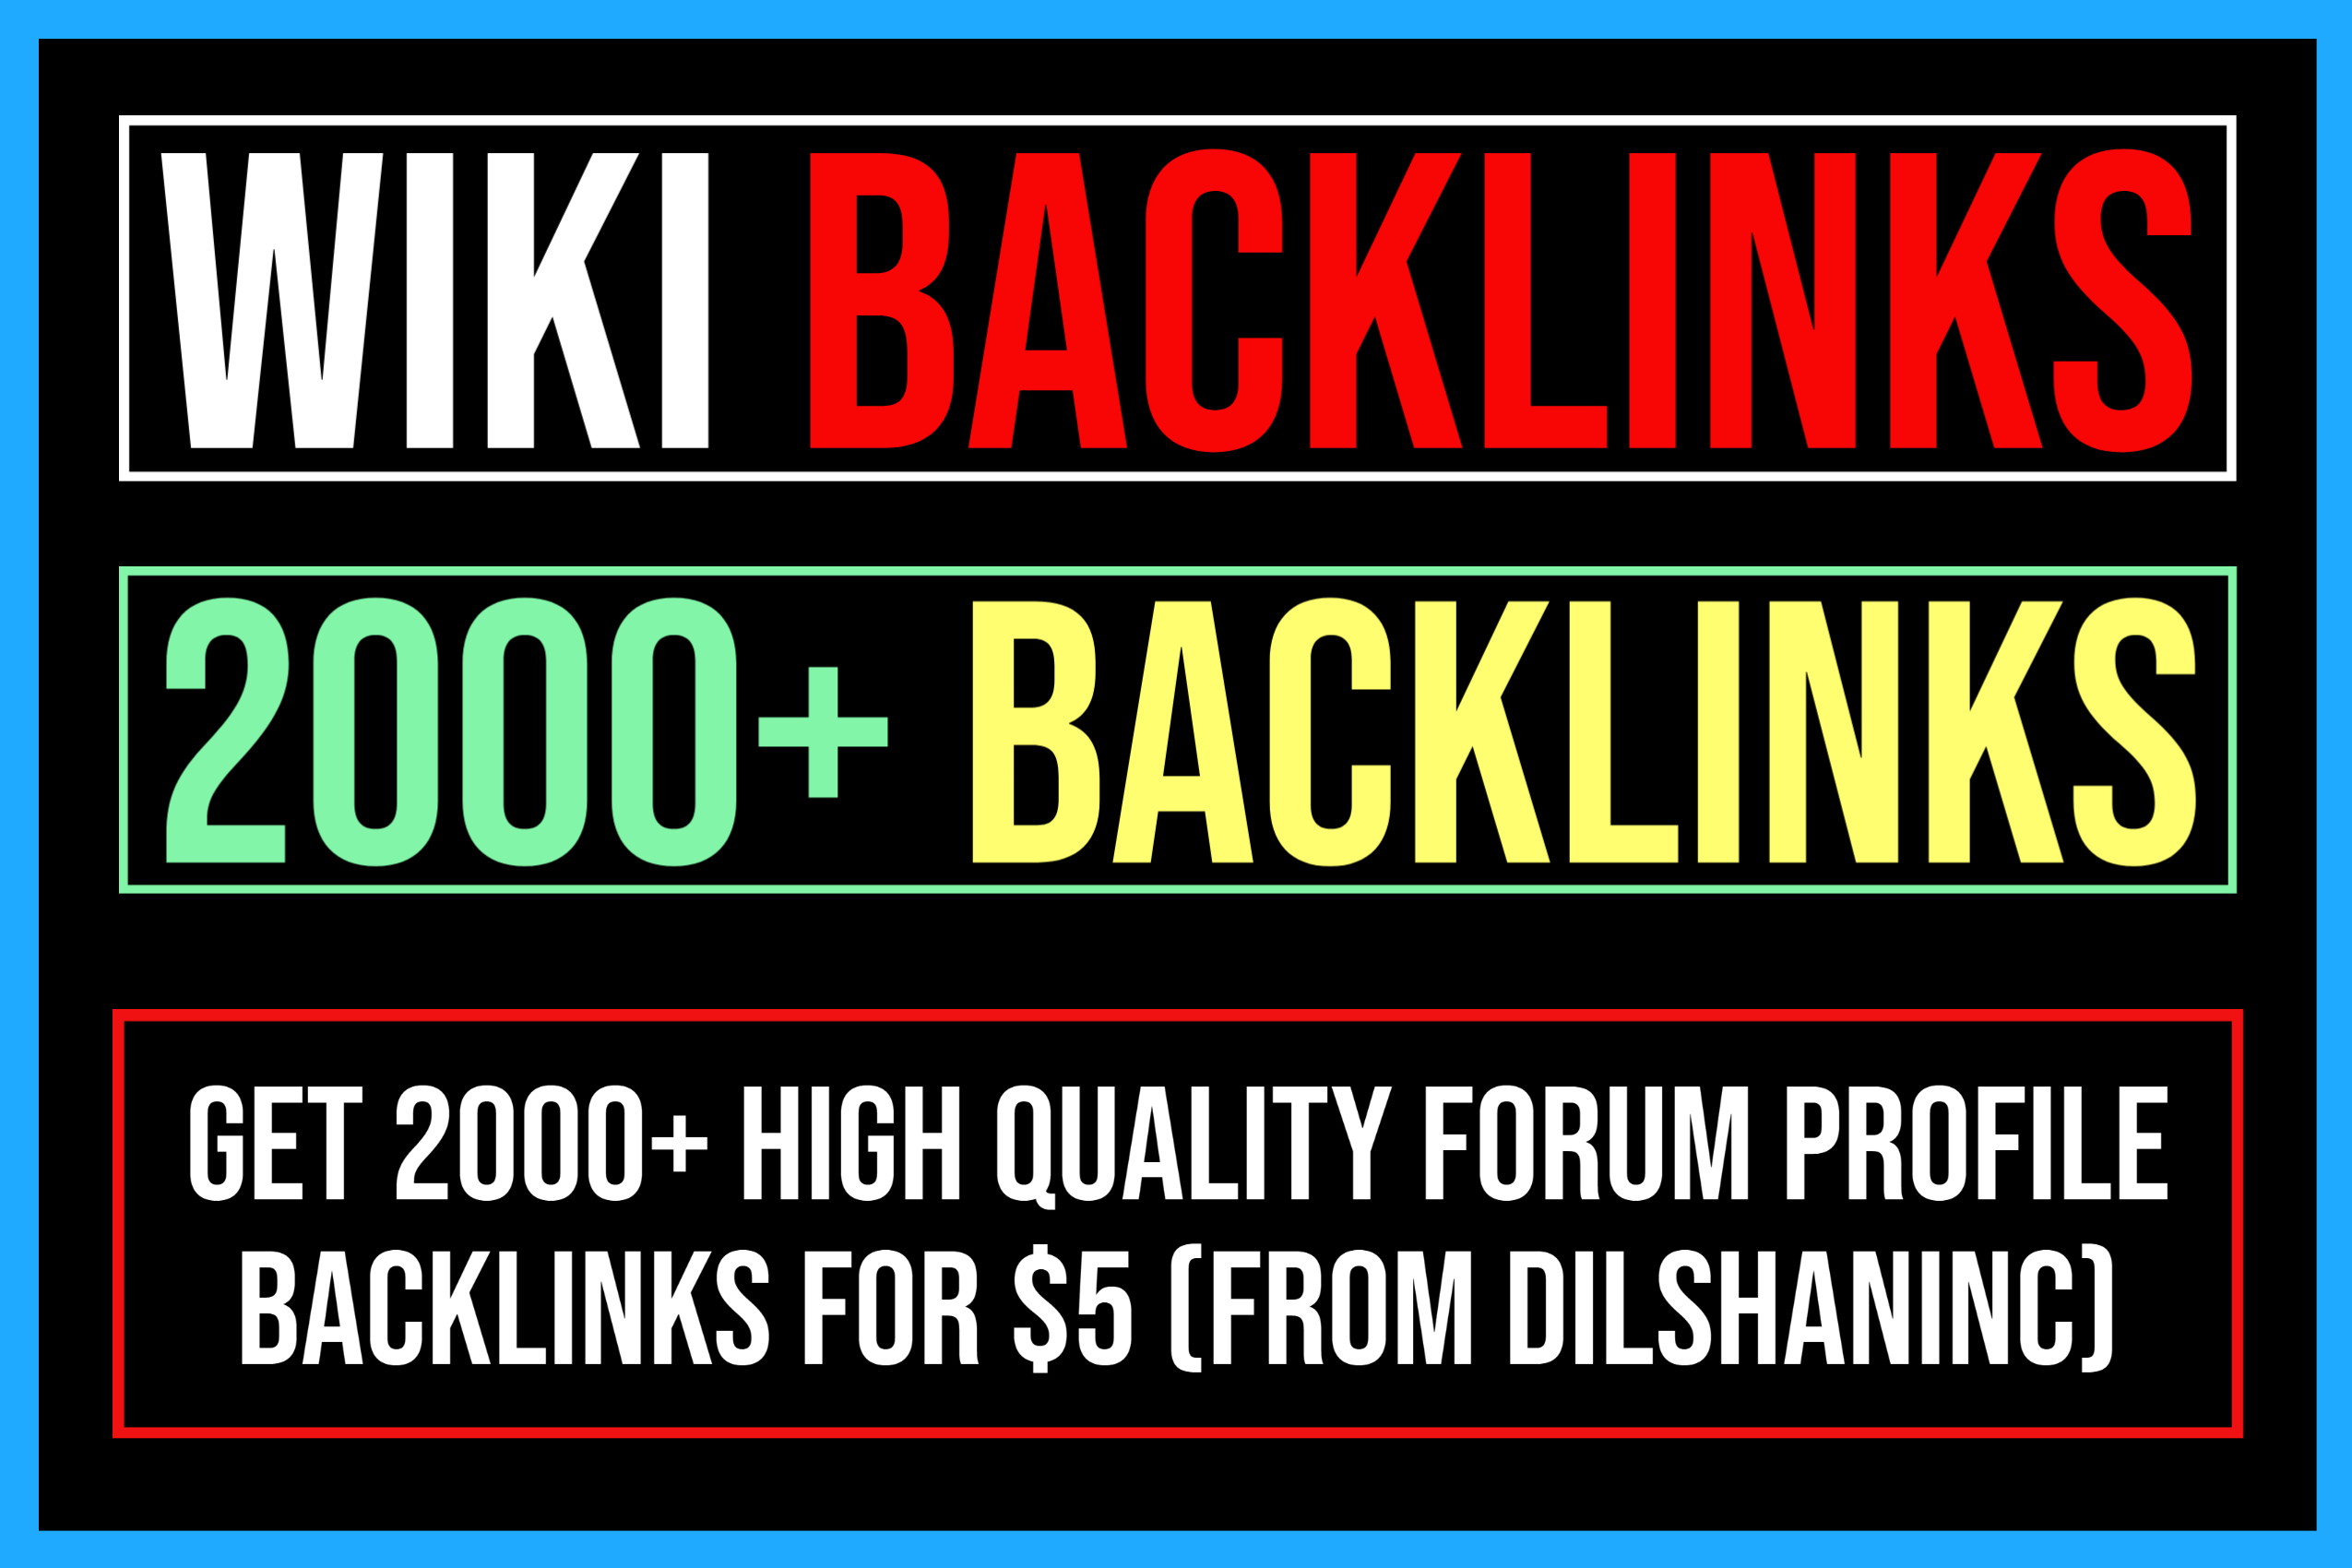 Create 2000+ High Quality Wiki Articles Backlinks